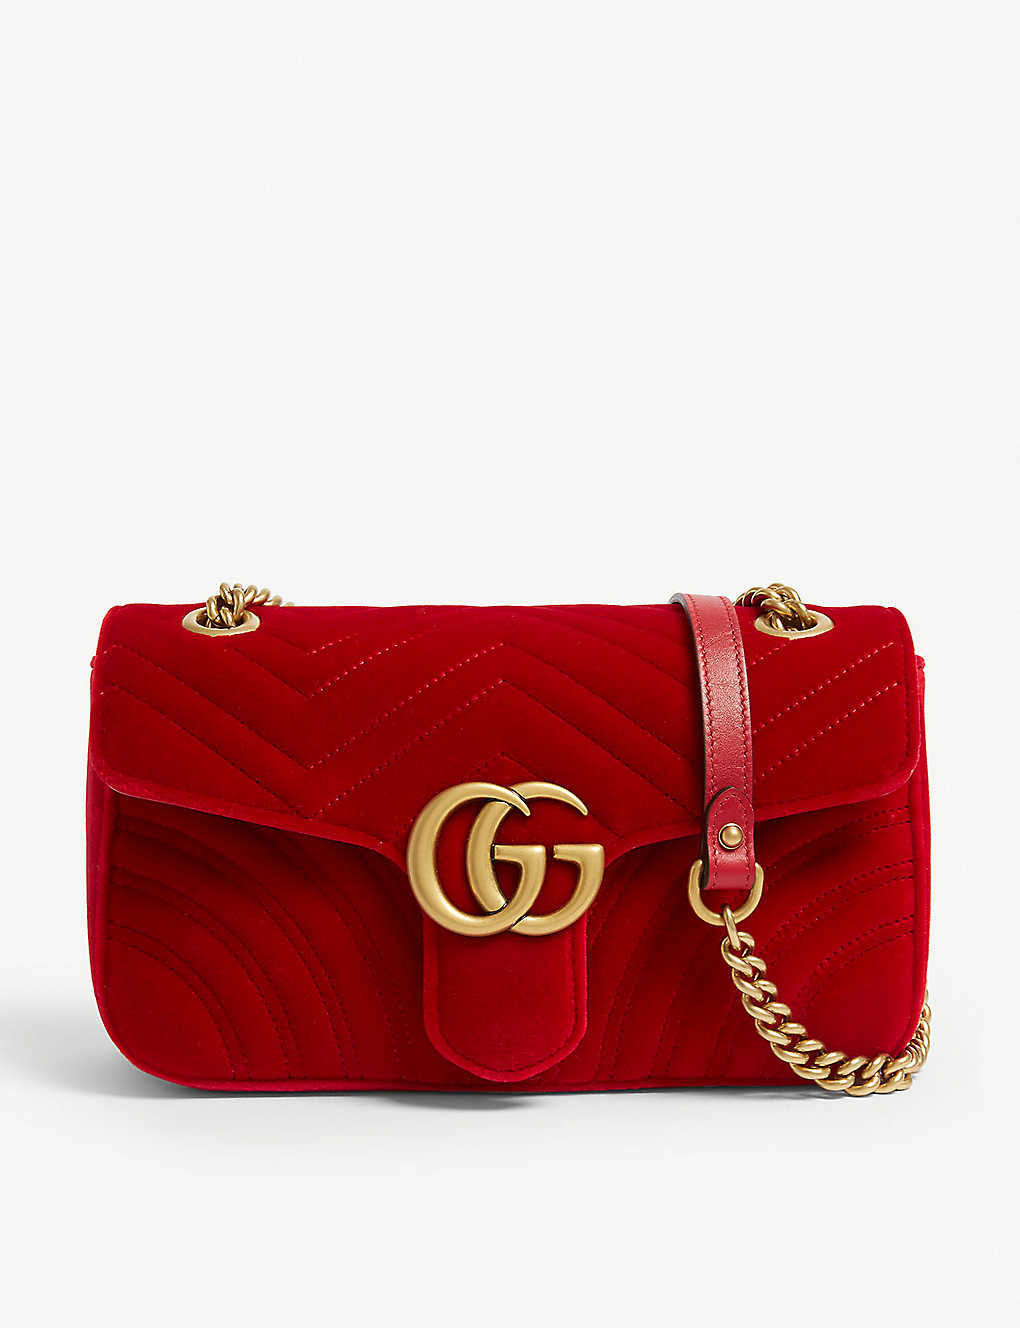 282cceb41c7f GUCCI - Velvet Marmont shoulder bag | Selfridges.com